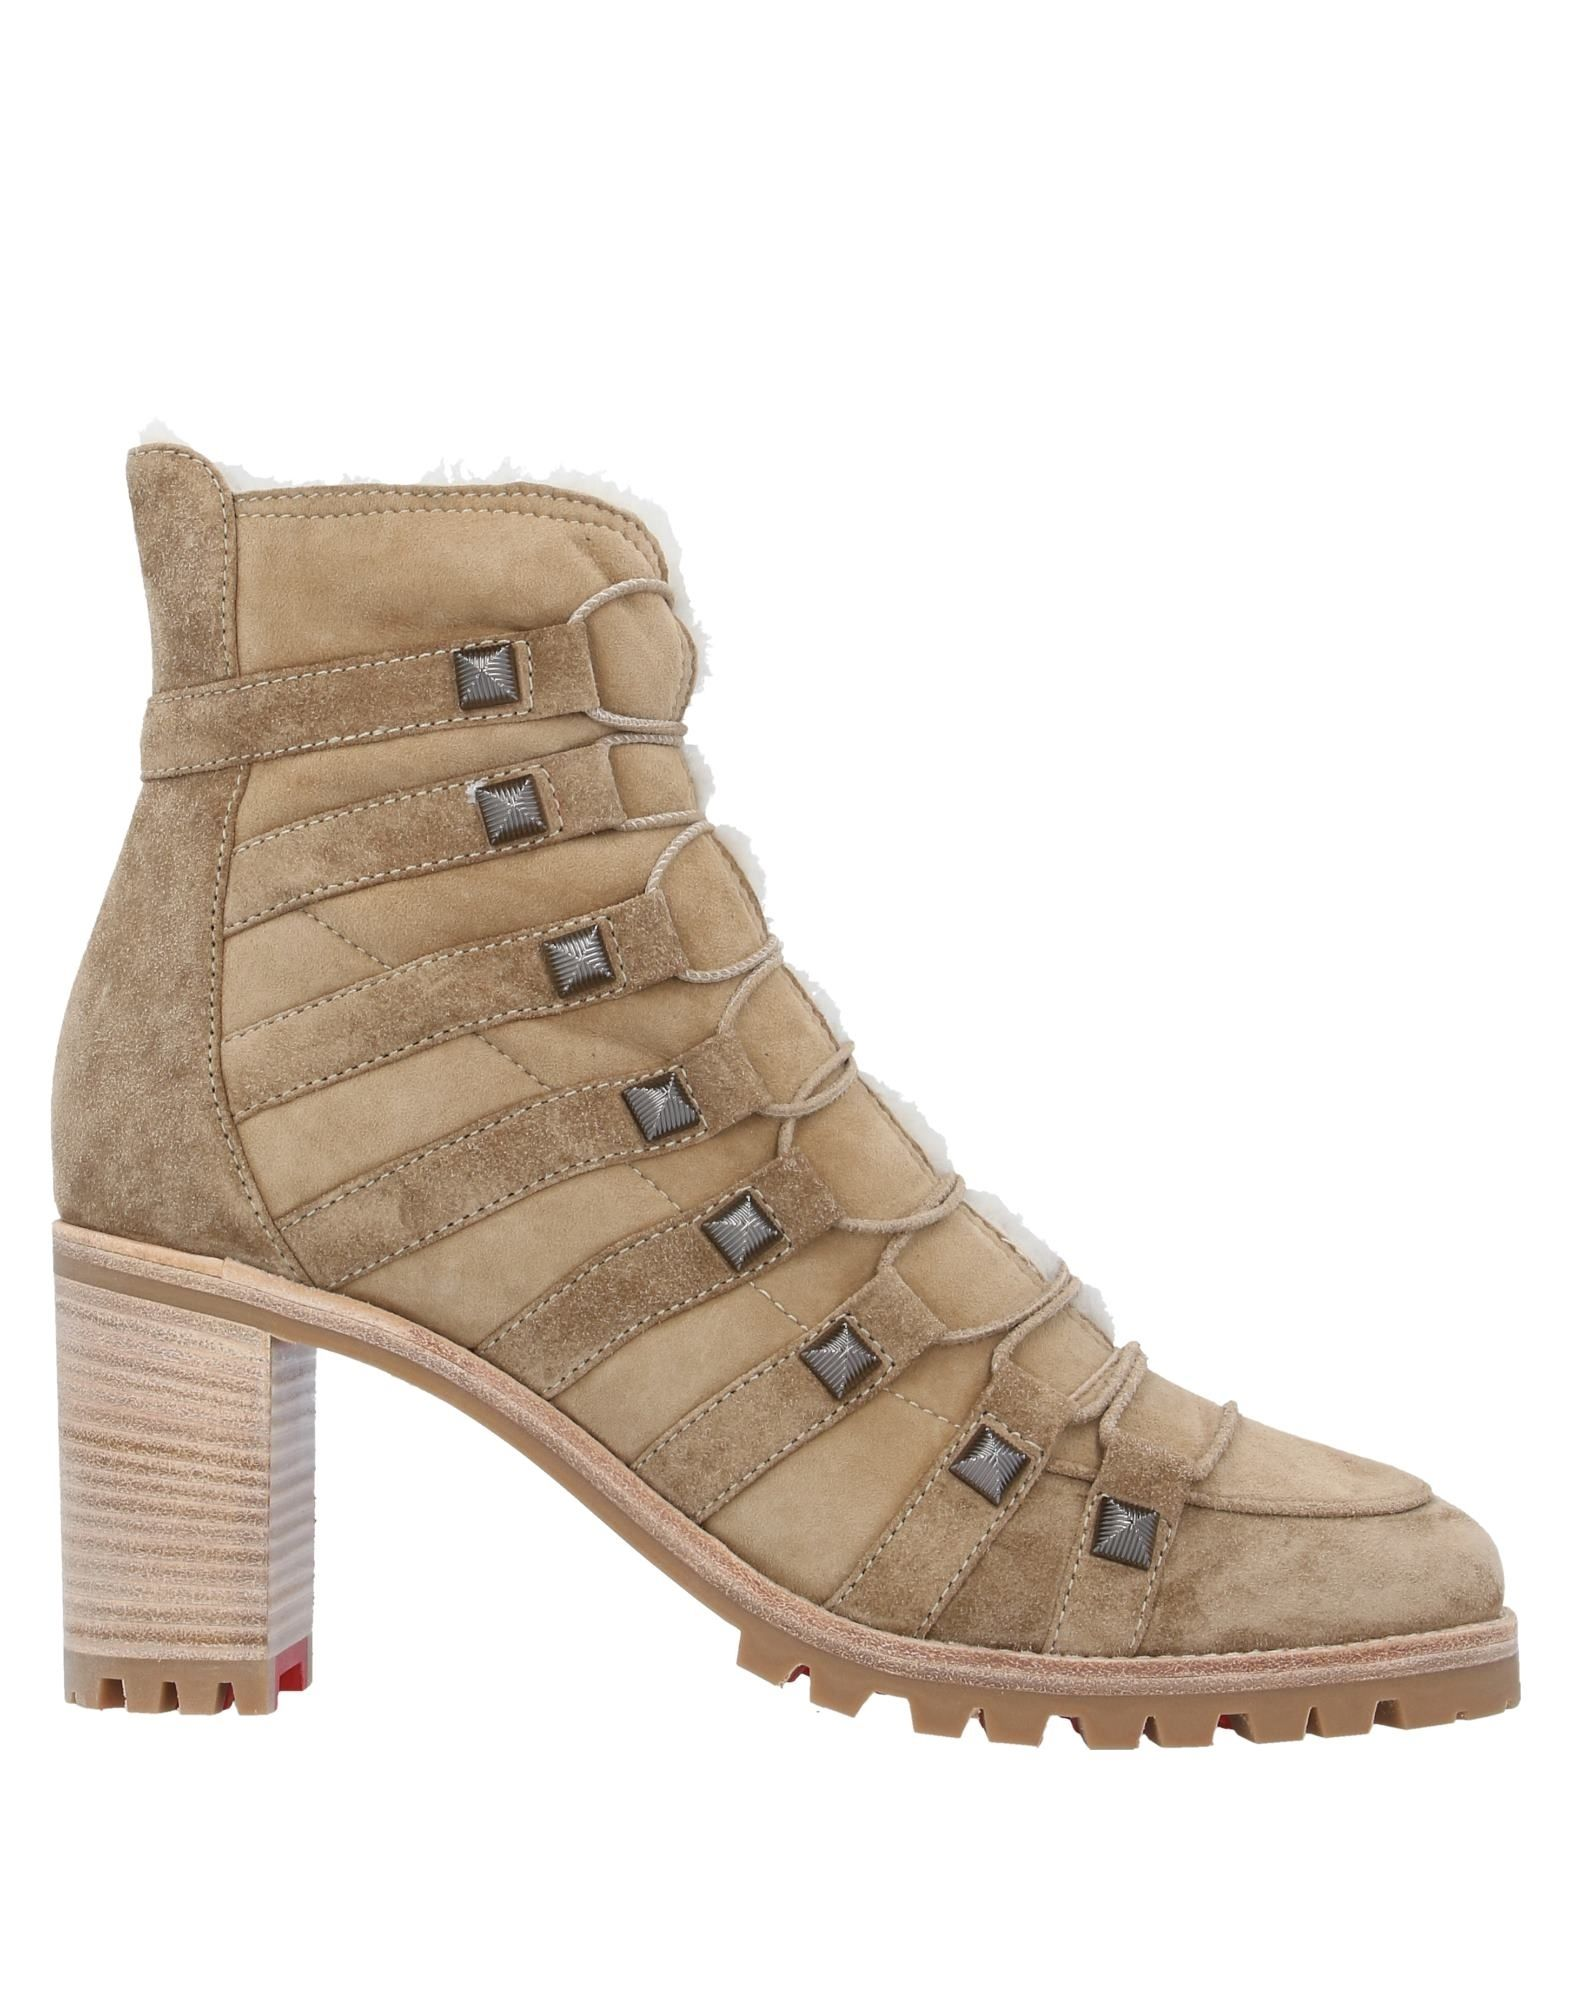 CHRISTIAN LOUBOUTIN Ankle boots. leather, suede effect, studs, solid color, laces, round toeline, square heel, lined in goat hair, rubber cleated sole, contains non-textile parts of animal origin, small sized. Soft Leather